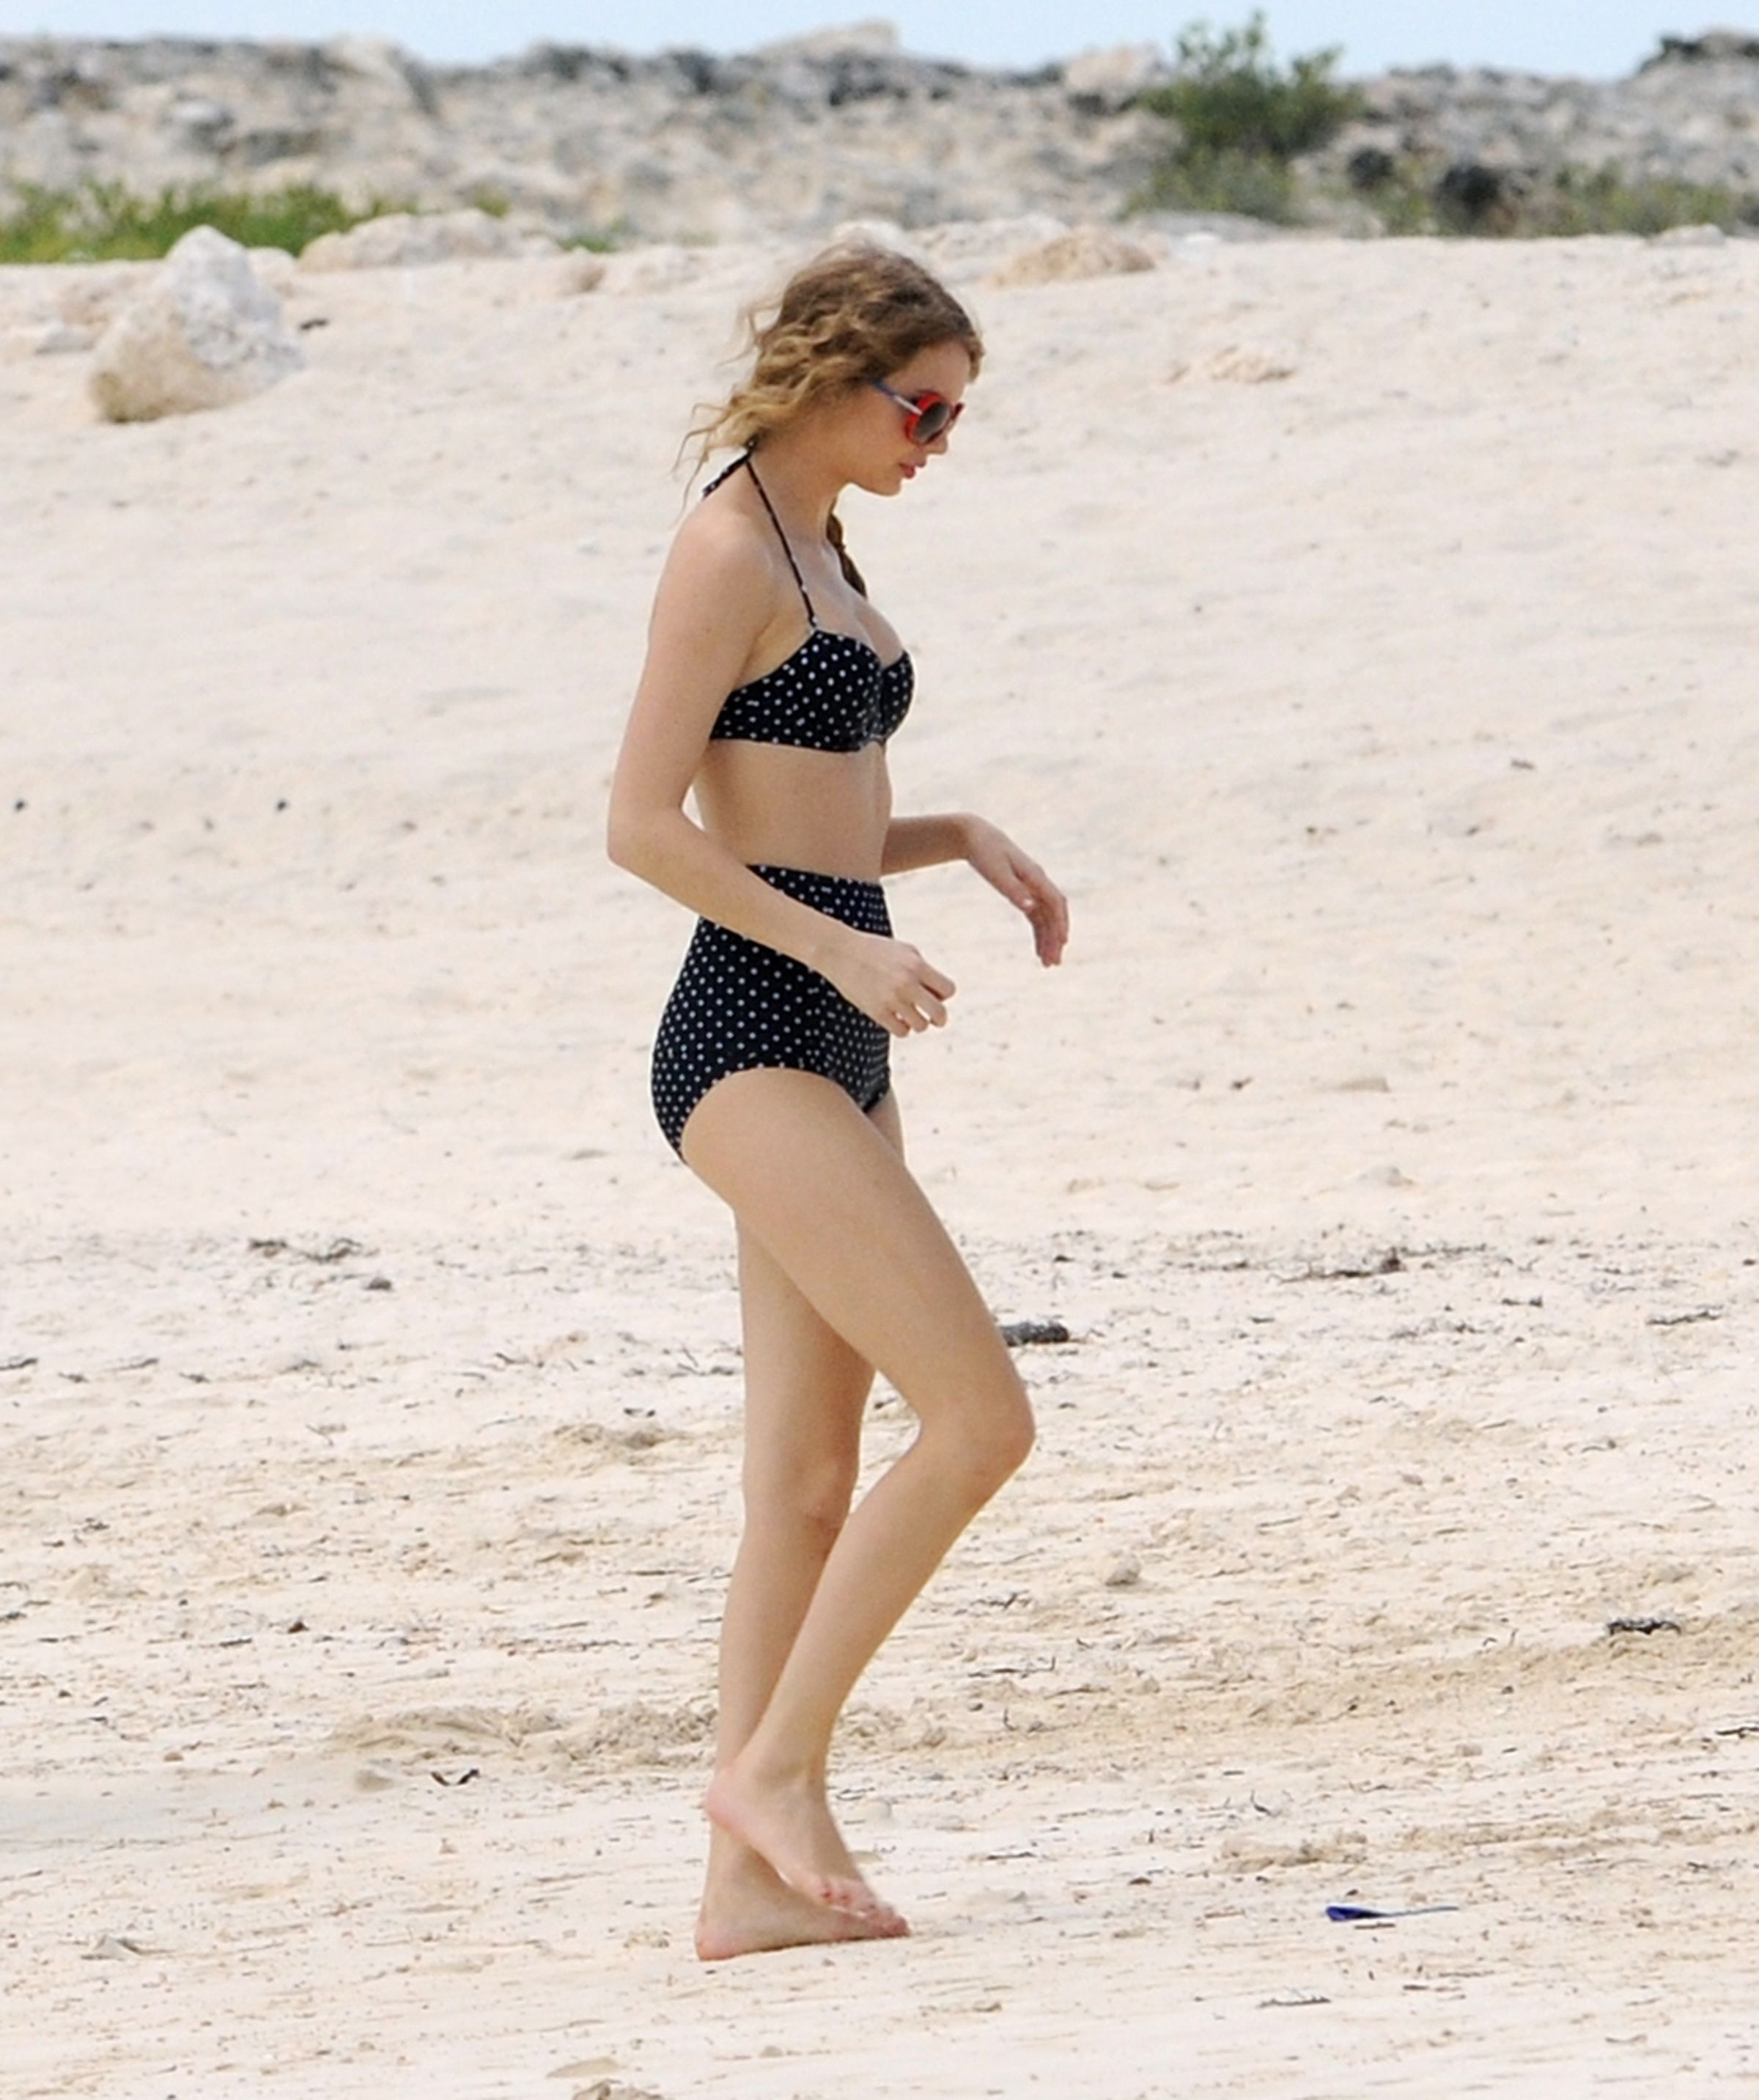 On The Beach Bahamas June 19 2010 Taylor Swift Bikini Taylor Swift Swimsuit Taylor Swift Style